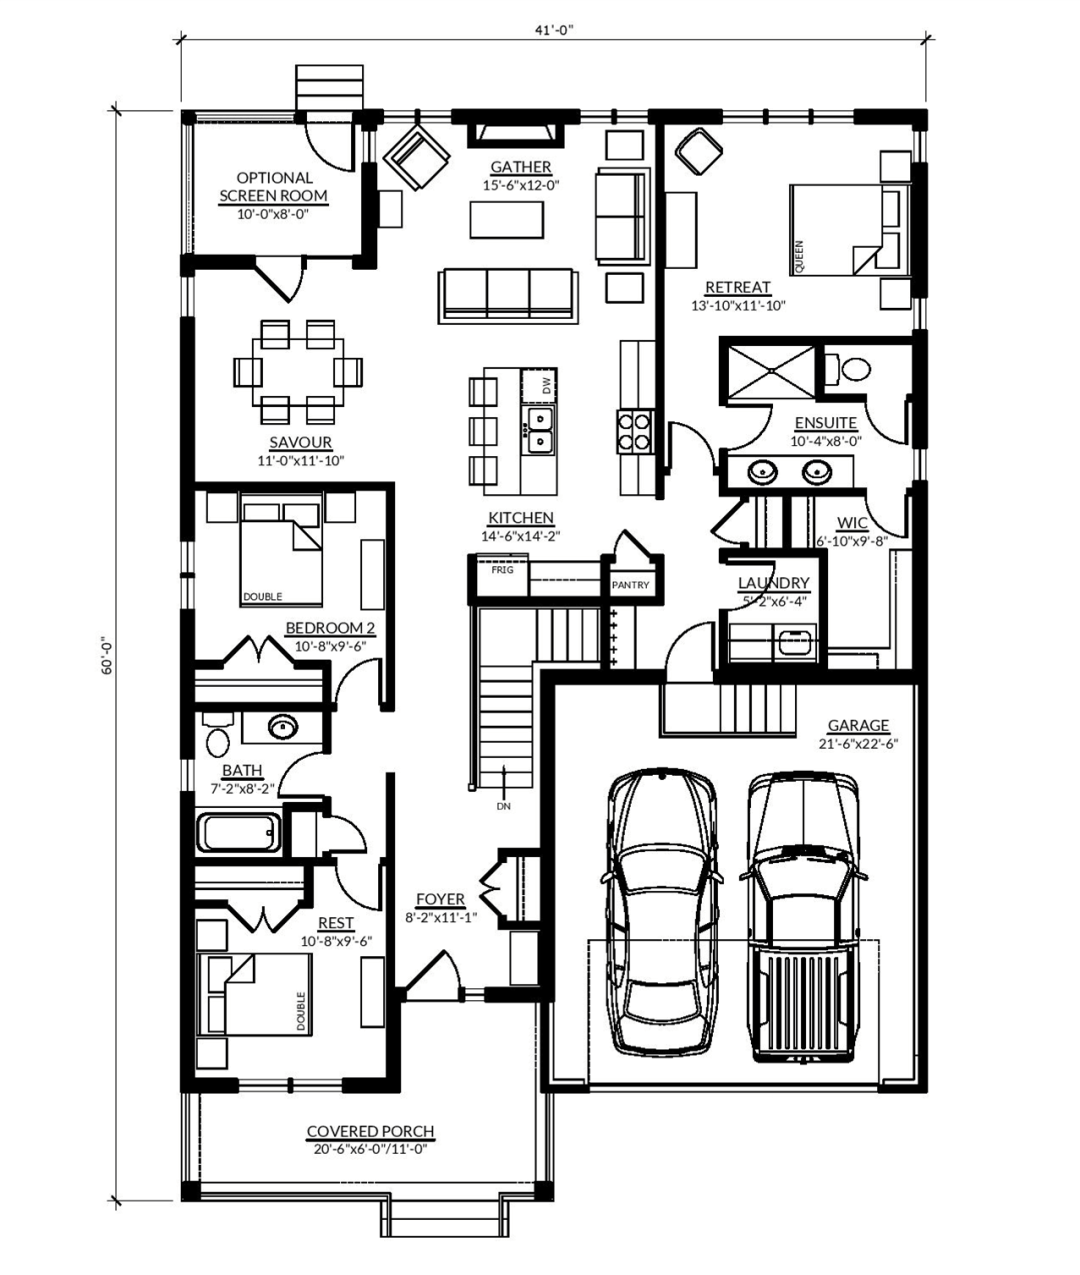 The main floorplan of the Opinicon at Watercolour Westport.